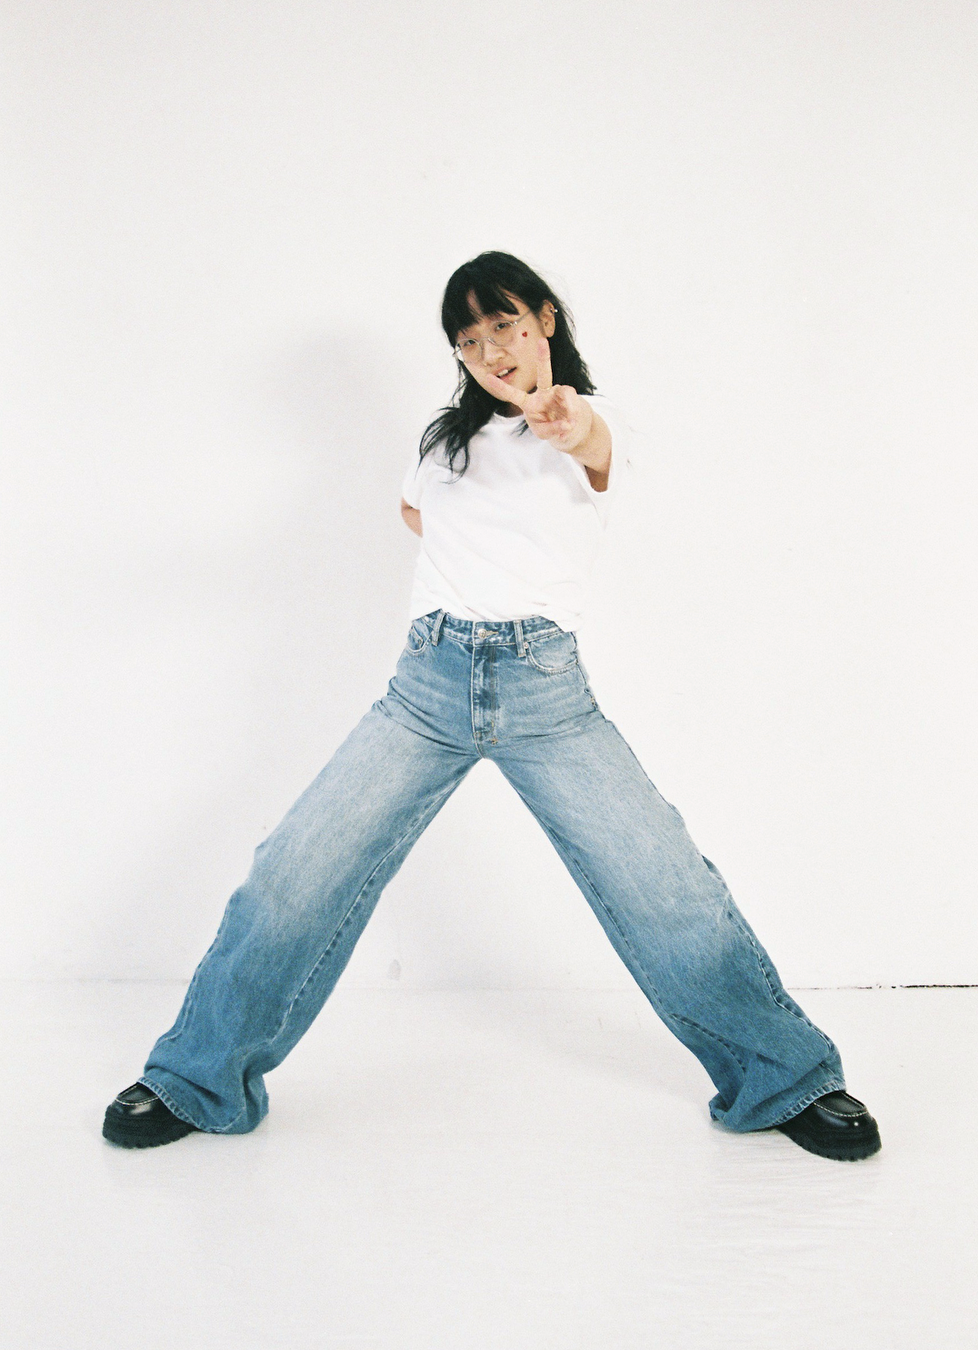 Yaeji announces vinyl release for WHAT WE DREW 우리가 그려왔던. Along with rthe news, Yaeji has launched her new Guild on Patreon